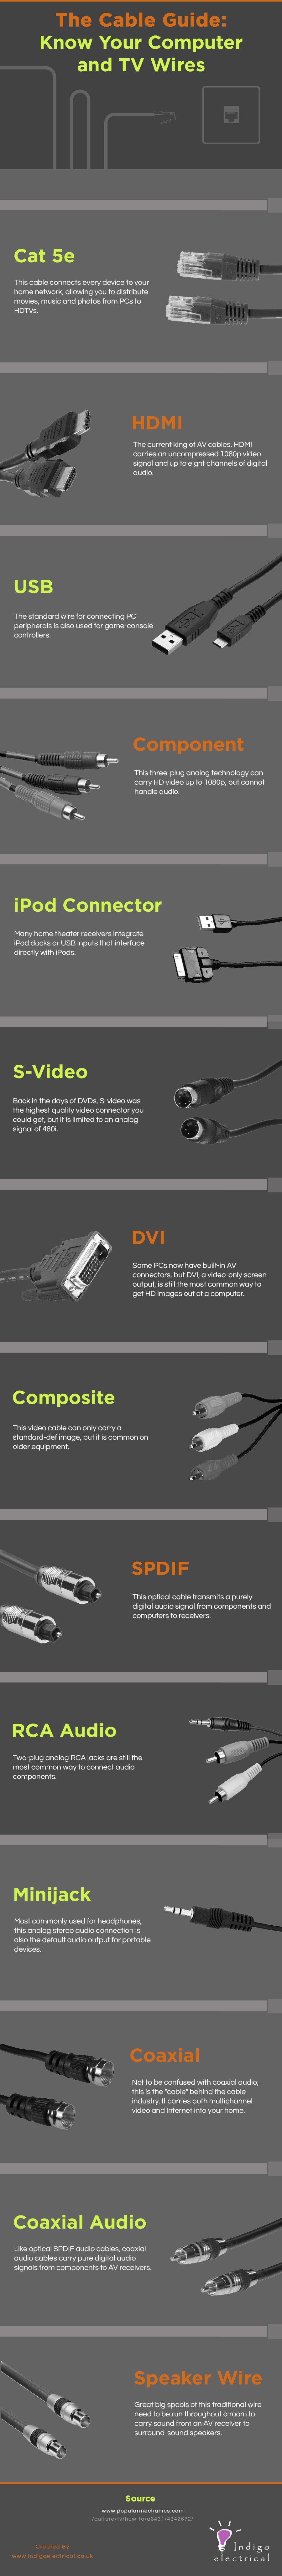 The Cable Guide: Know Your Computer and TV Wires